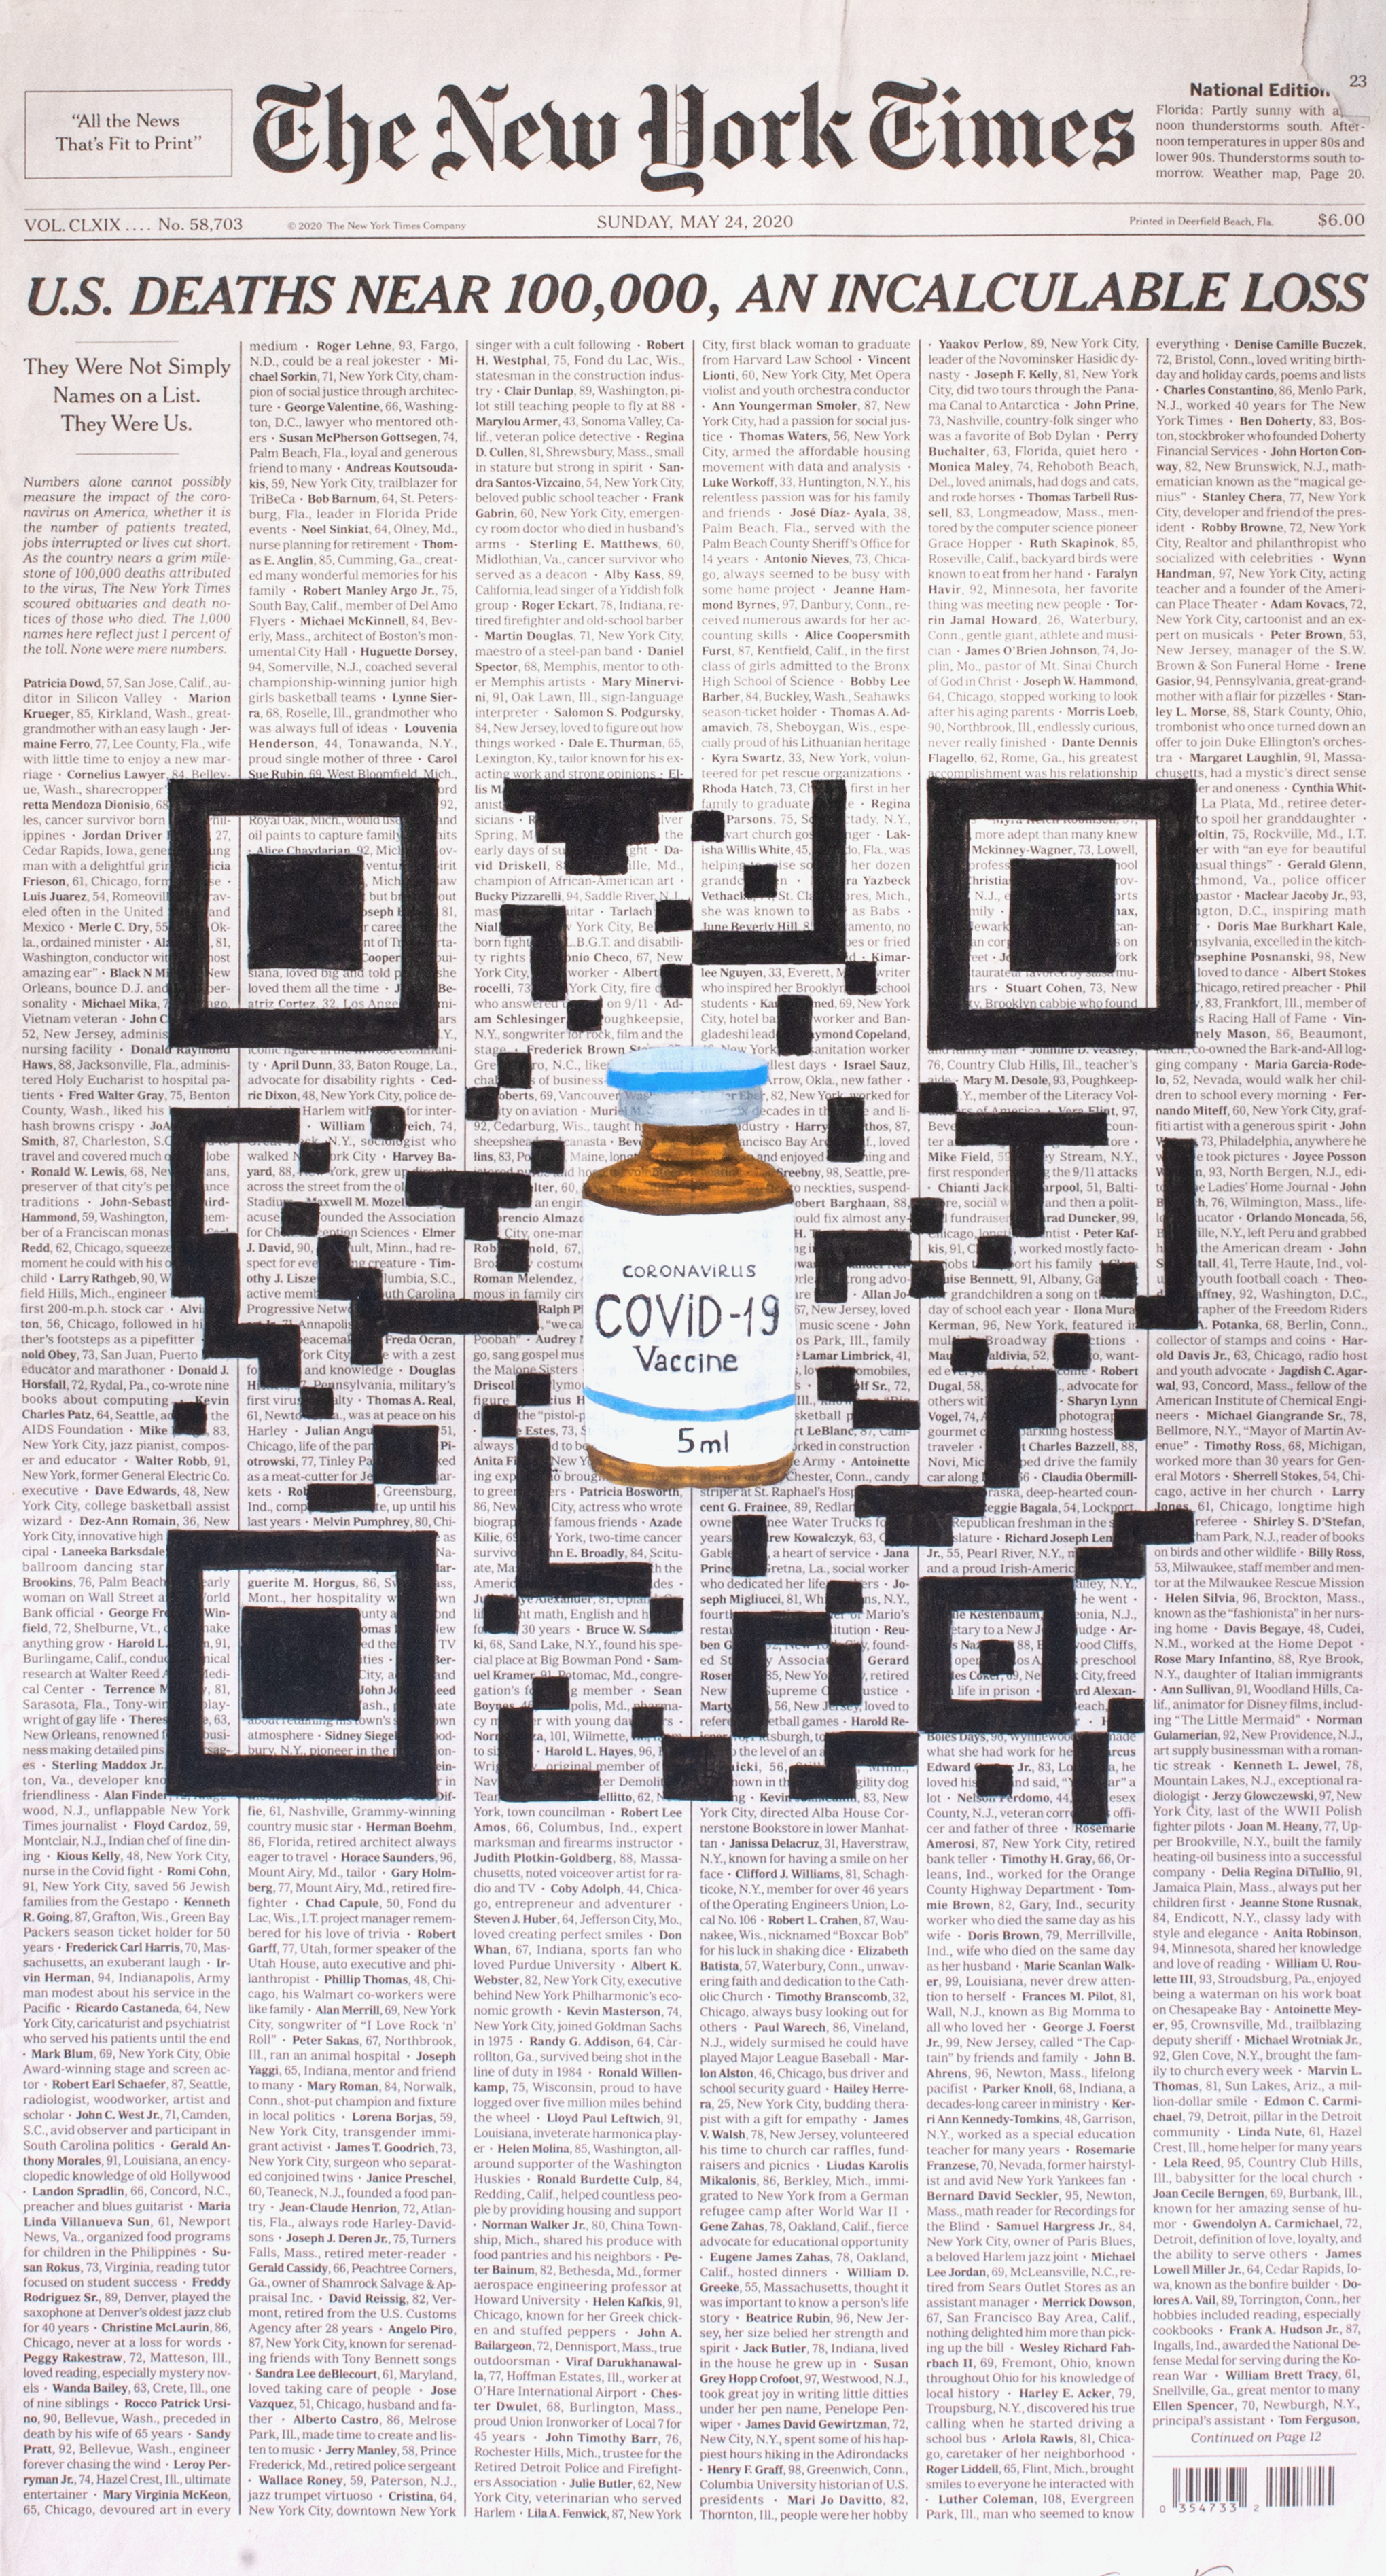 QR Code illustration with Covid vaccine pill bottle